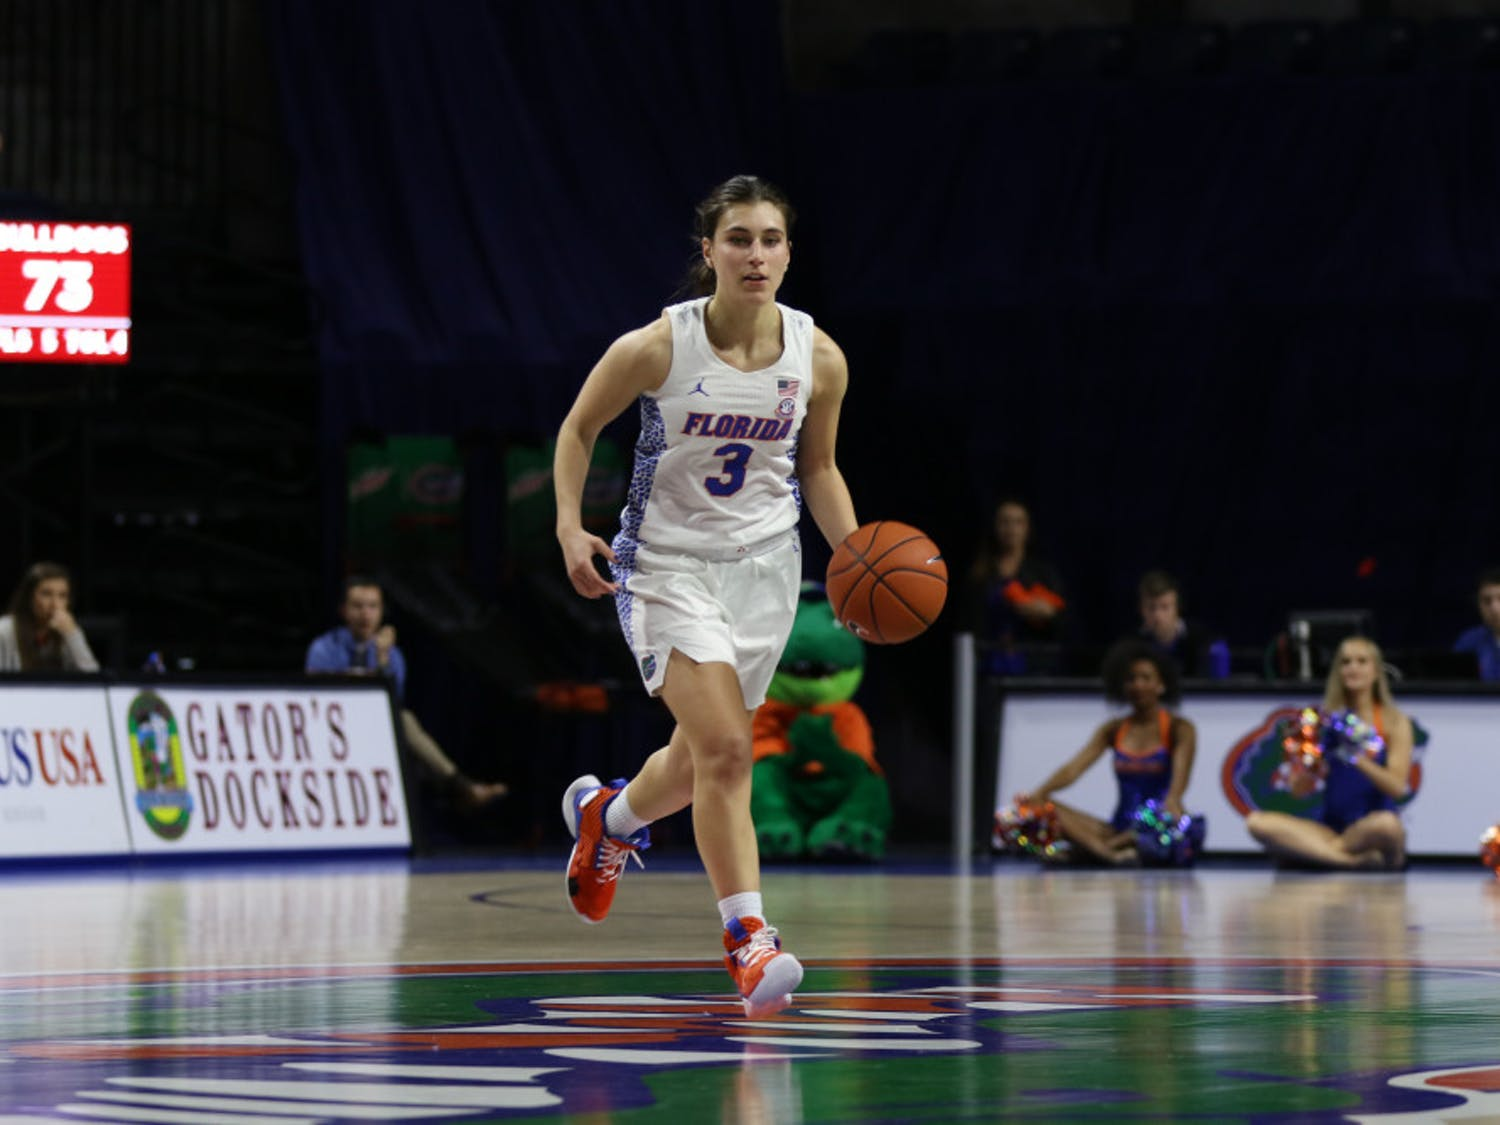 Florida guard Funda Nakkasoglu leads the Gators with 16.3 points per game this season, roughly six points higher than the next player.